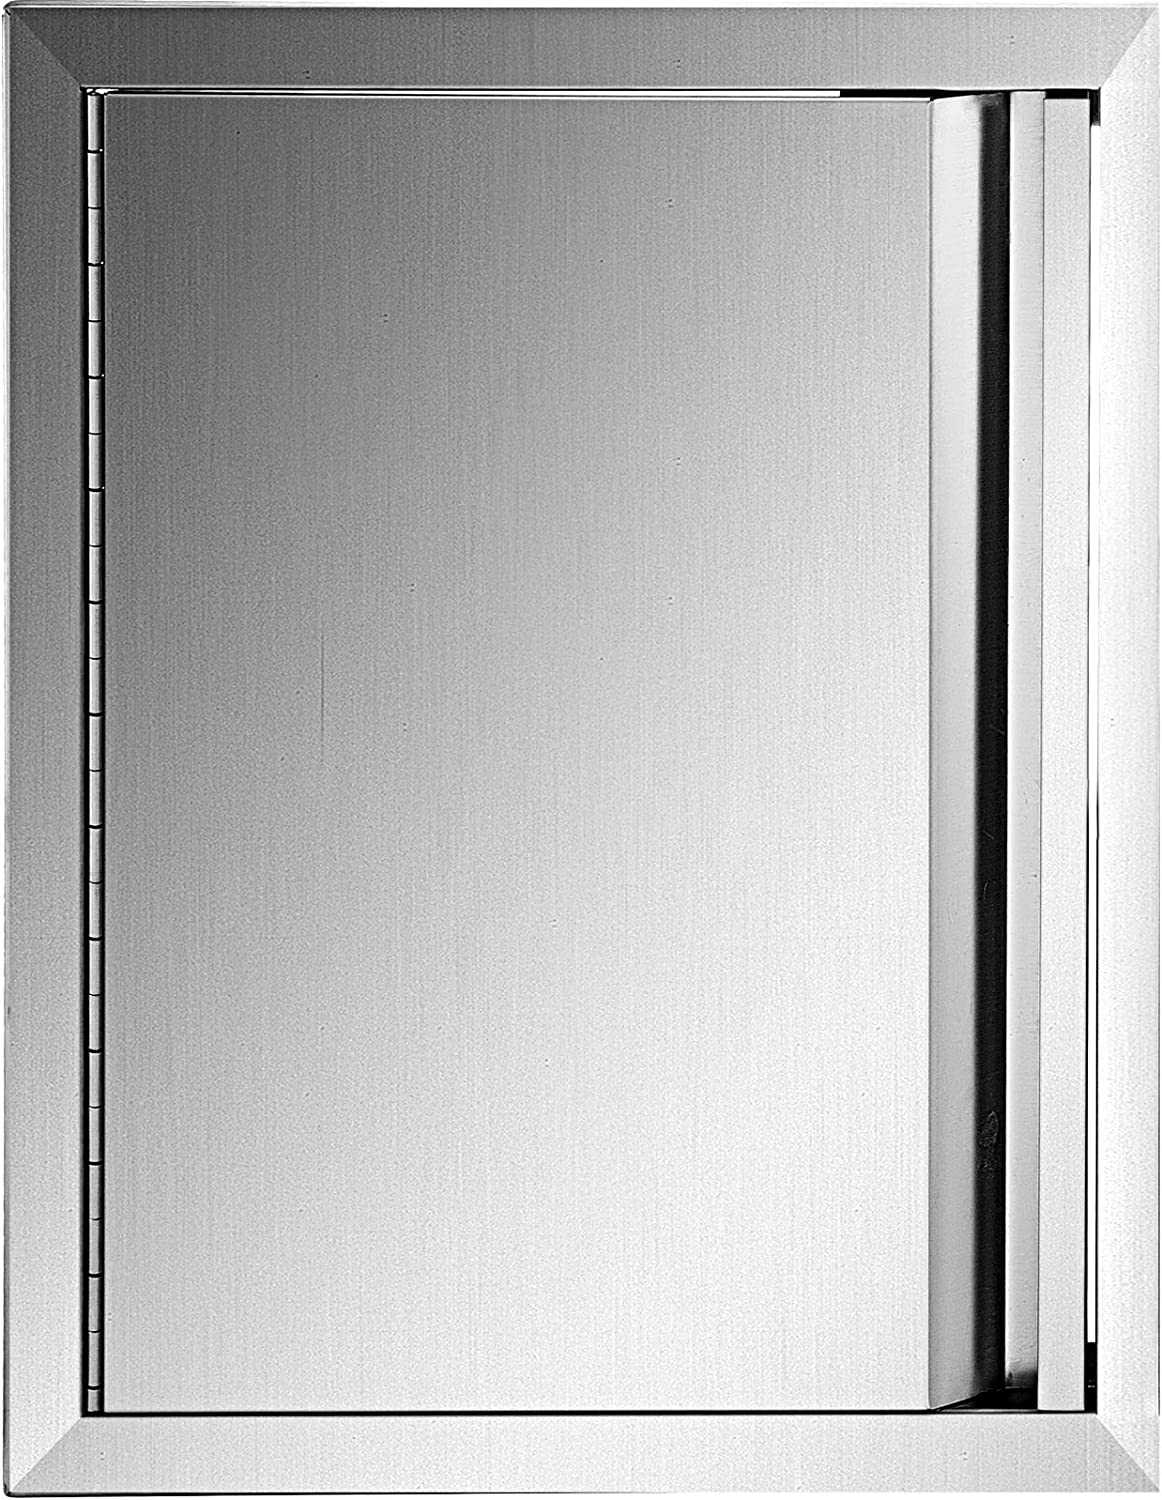 """Details about  / BBQ Access Door 35/"""" W X 24/"""" H 304 Stainless Steel Outdoor 35/"""" W x 24/"""" H"""